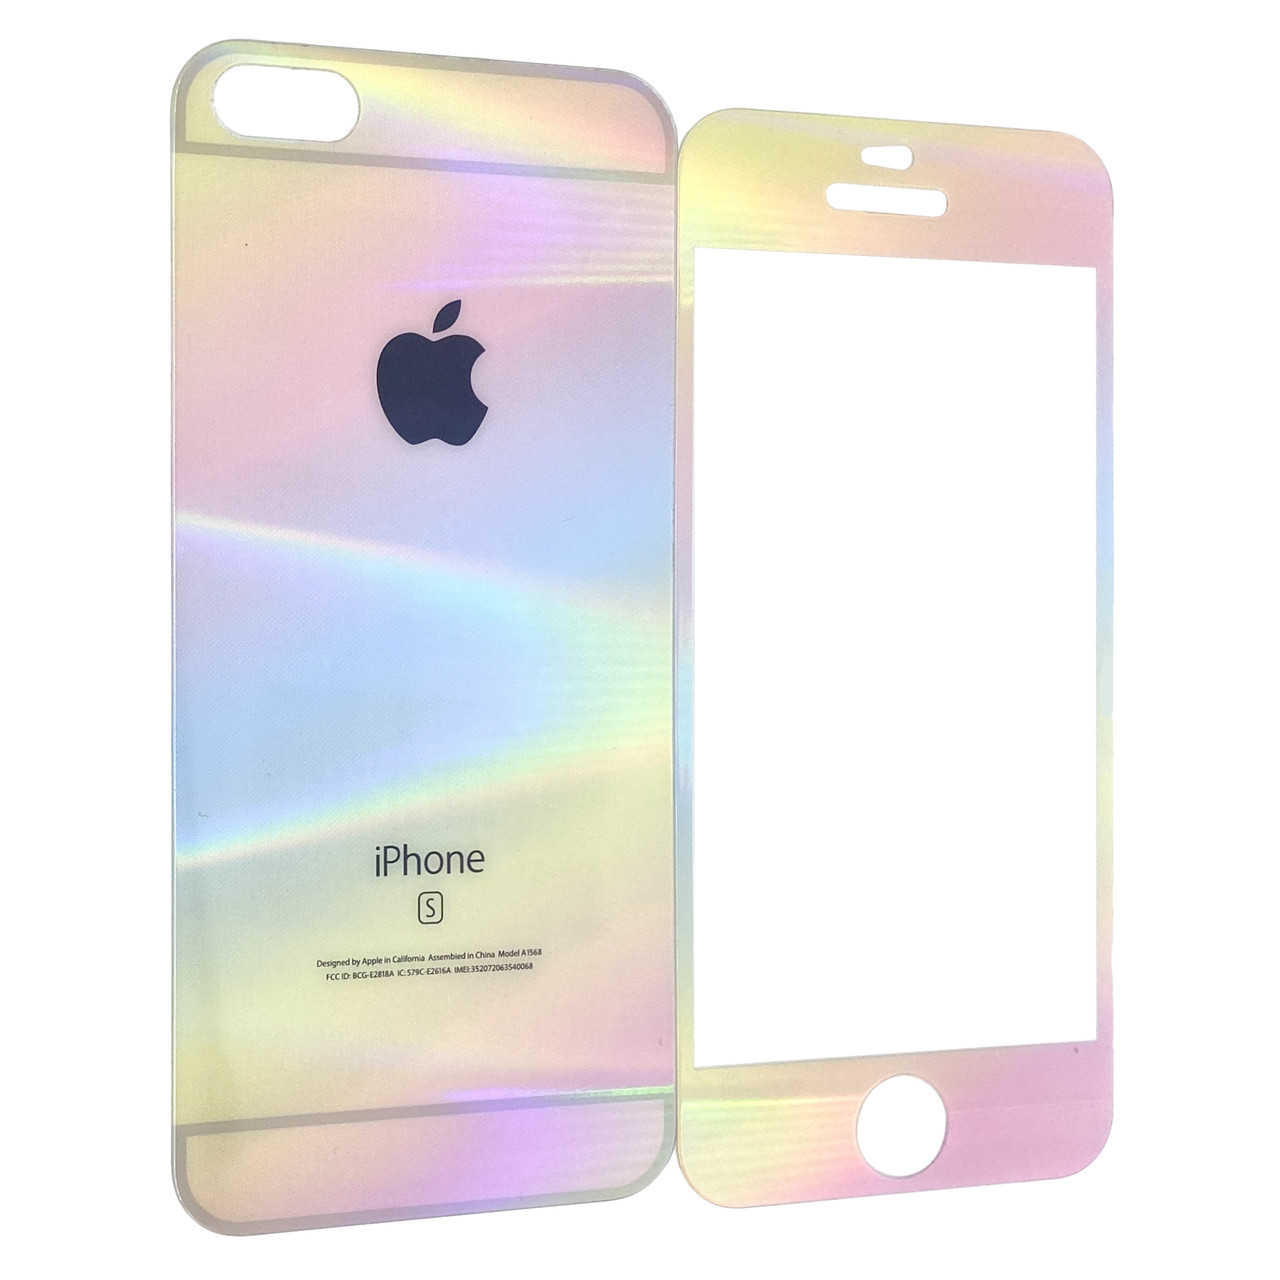 Захисне скло Apple iPhone 5/5S pearl back/face (multicolored)